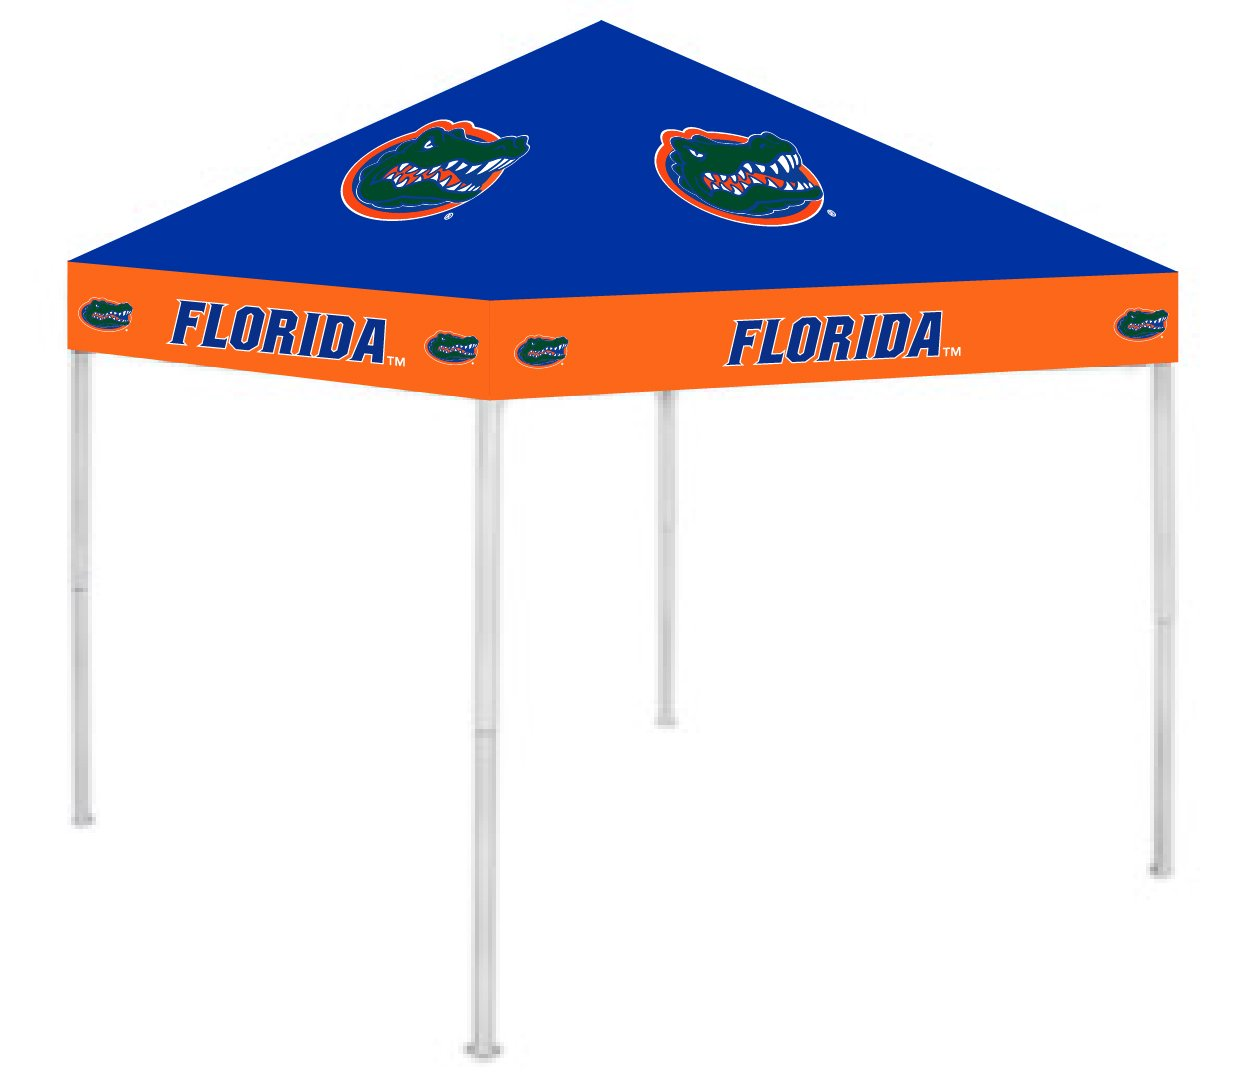 Rivalry RV191-5000 9' x 9' Florida Ultimate Tailgate Pop-Up Gazebo Canopy Tent B000UMJFUE 9 x 9|フロリダゲーターズ フロリダゲーターズ 9 x 9